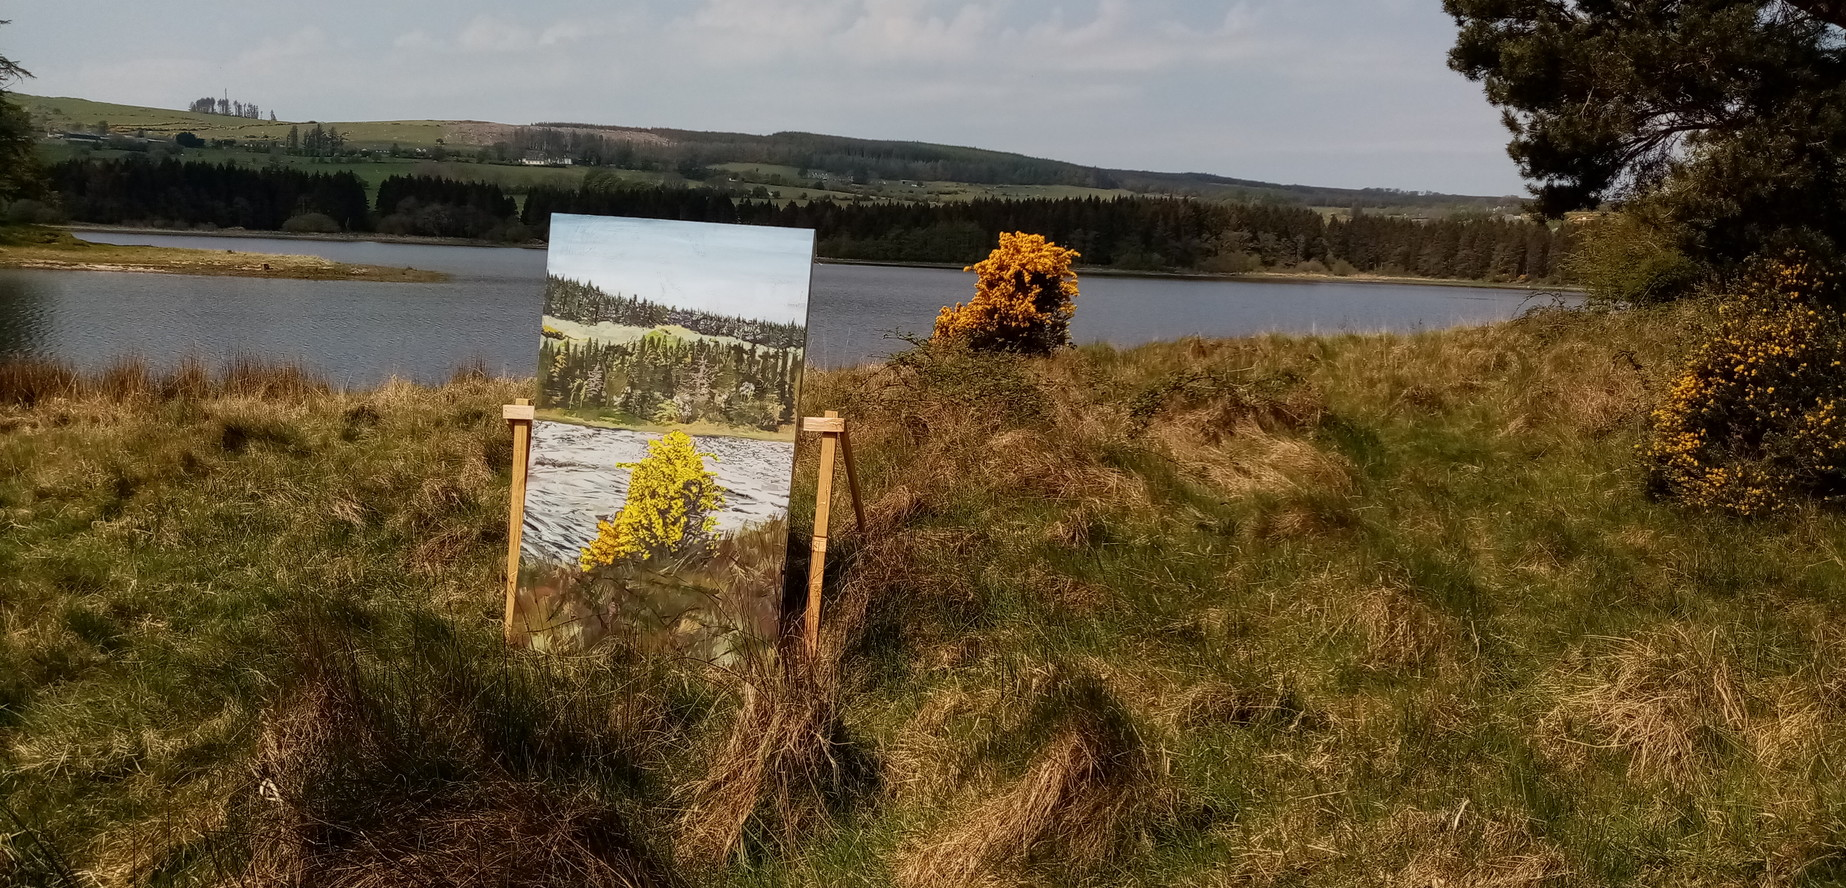 Photograph of a painting made on-site in Wicklow, Ireland, with the painted landscape view in the background